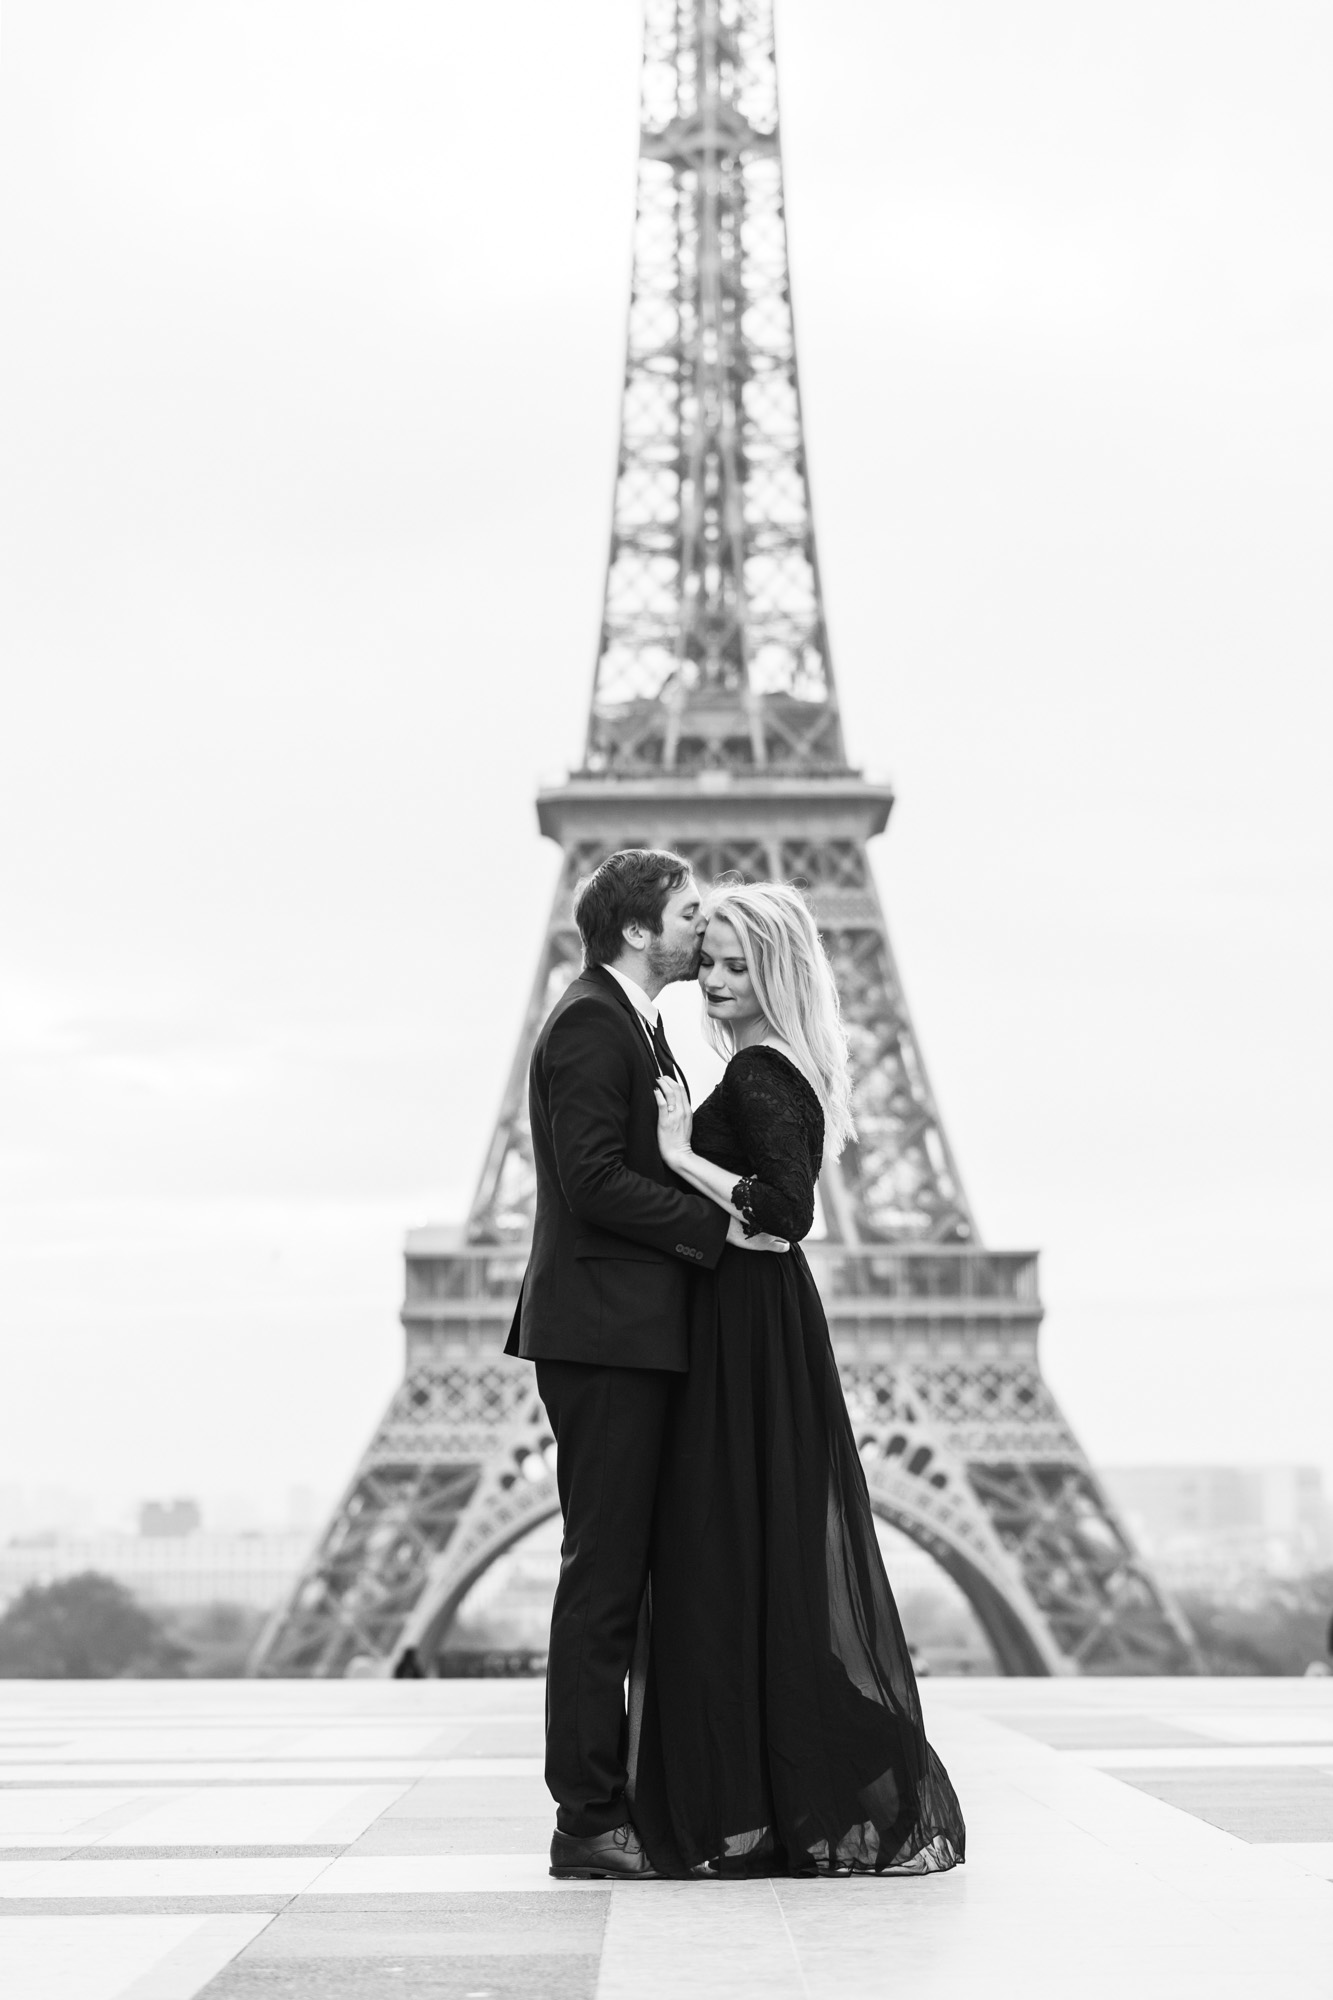 Paris engagement black and white photograph couple portrait at Trocadero with the view of the Eiffel Tower captured by Paris Photographer Federico Guendel